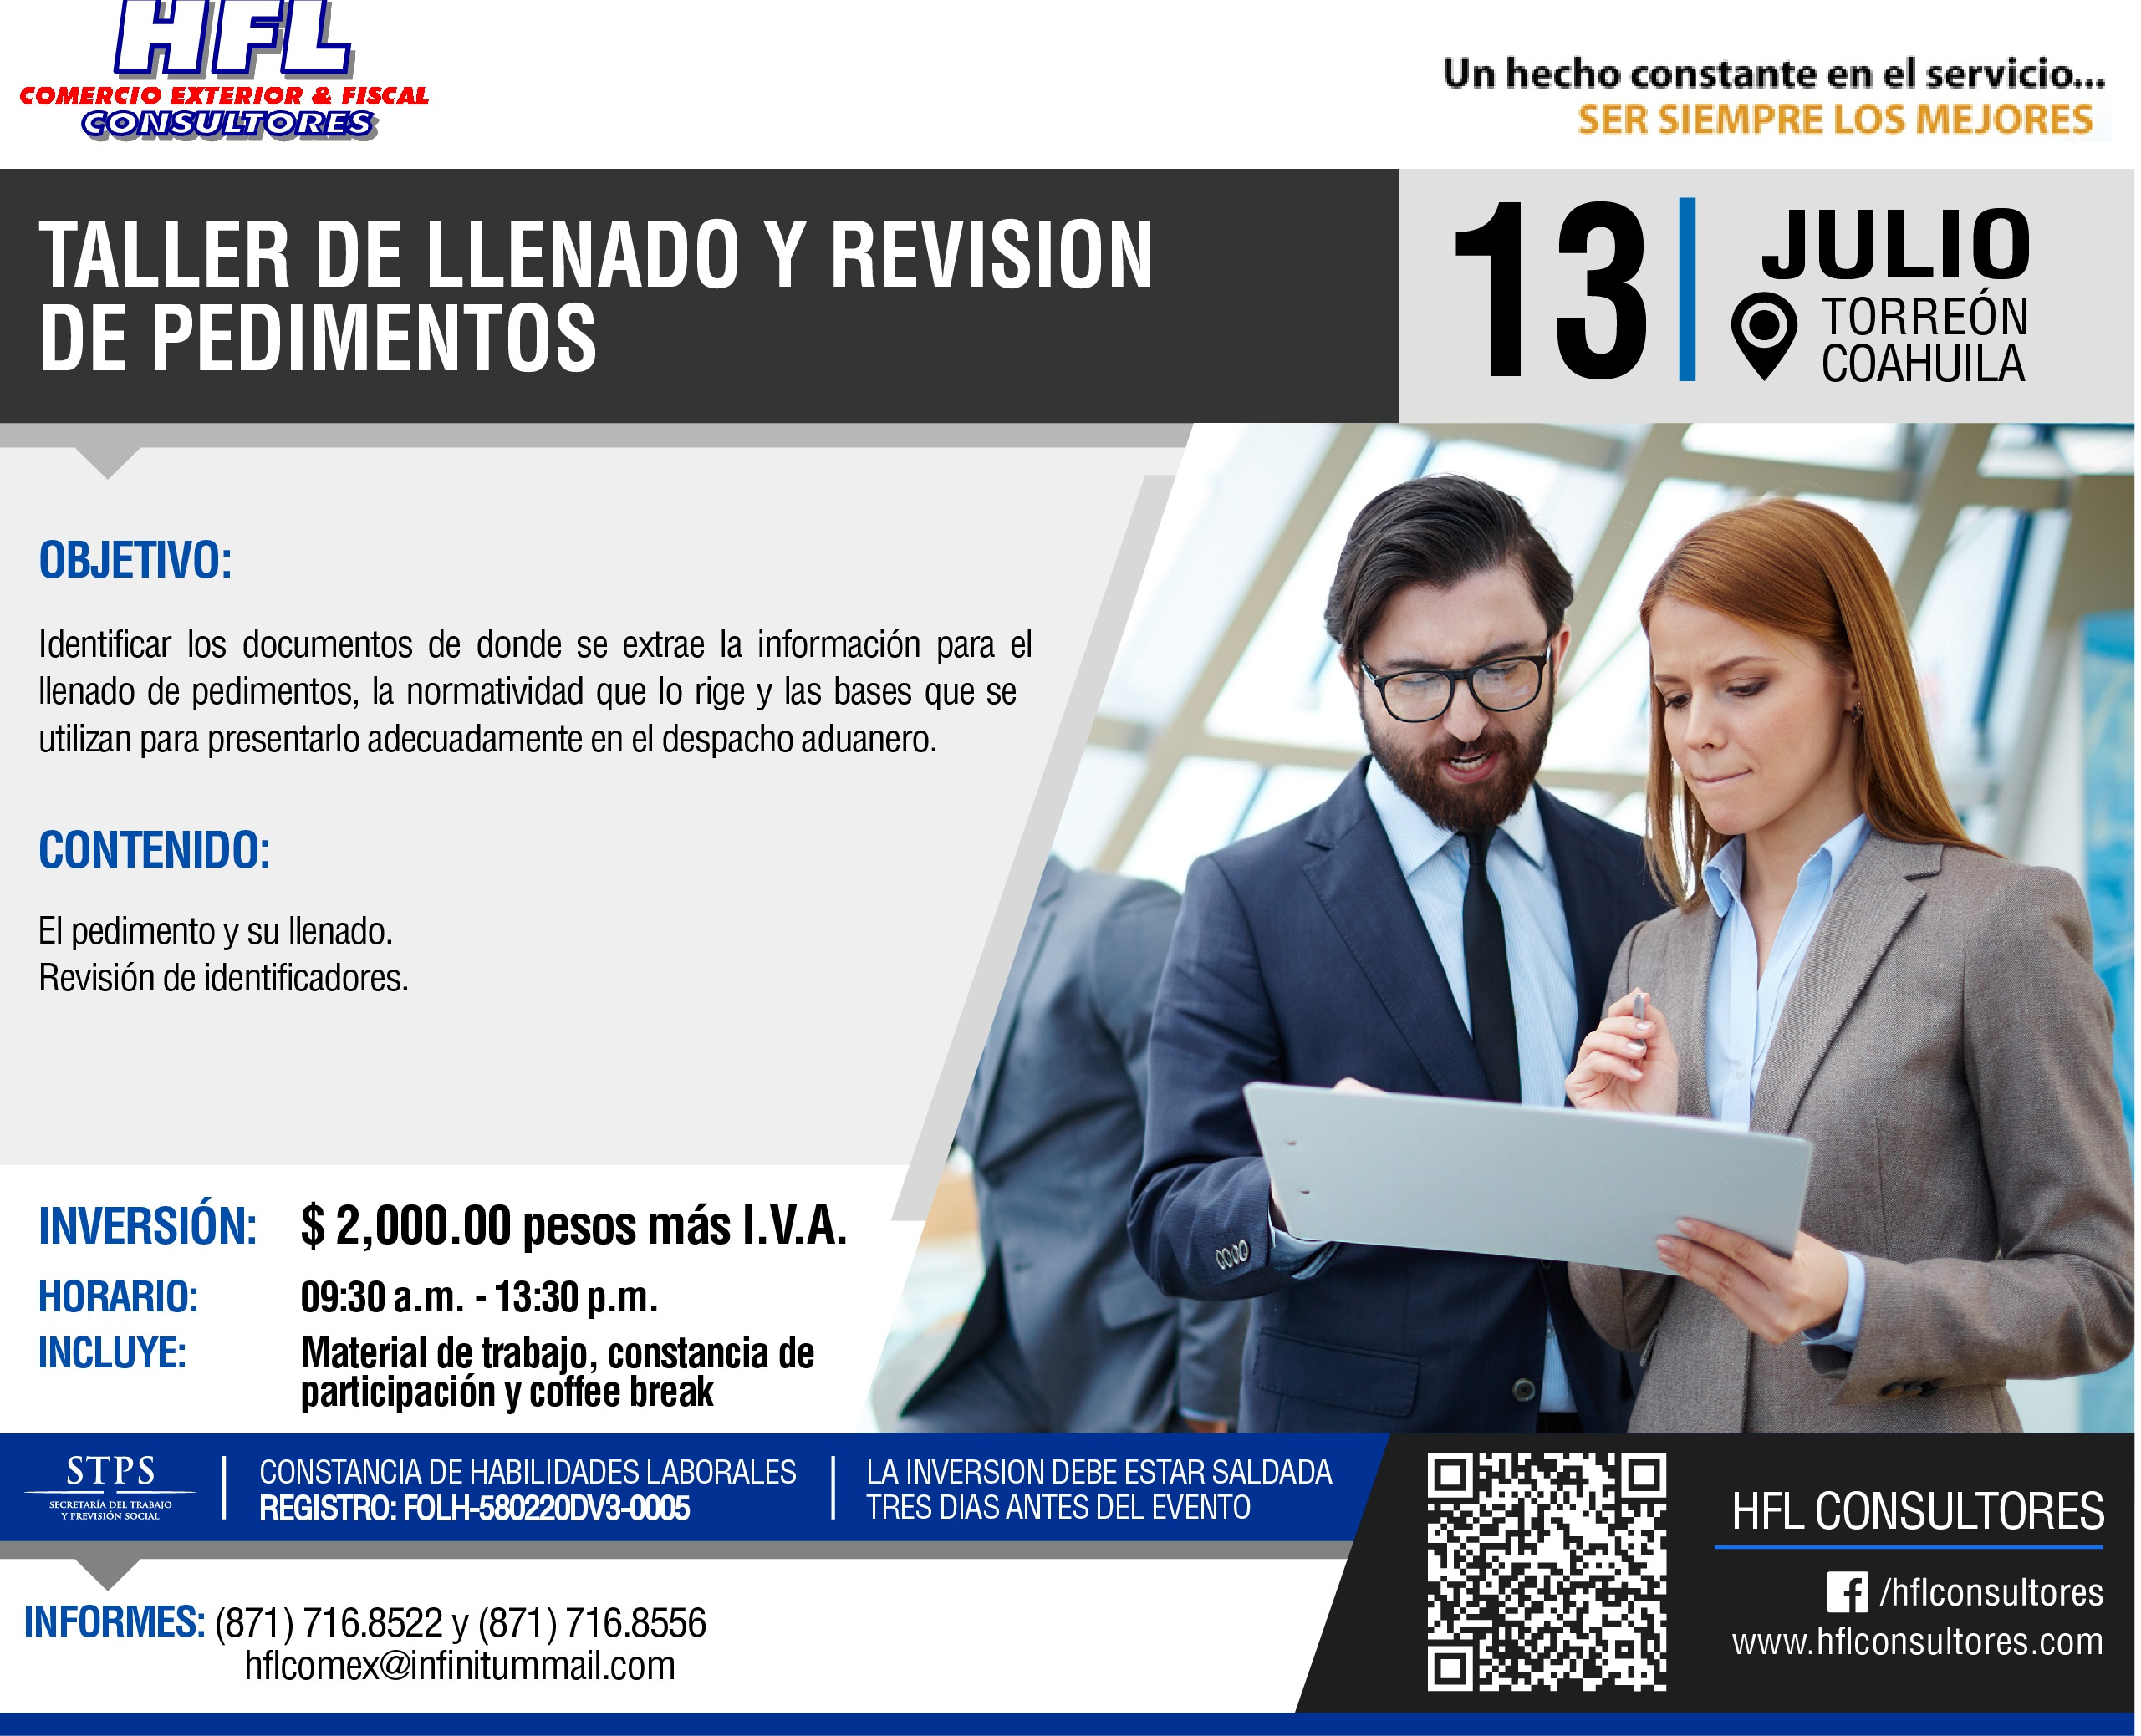 https://0201.nccdn.net/1_2/000/000/141/f6e/LLNDPED-13-de-julio-2019--TORREON-2561x2077.jpg